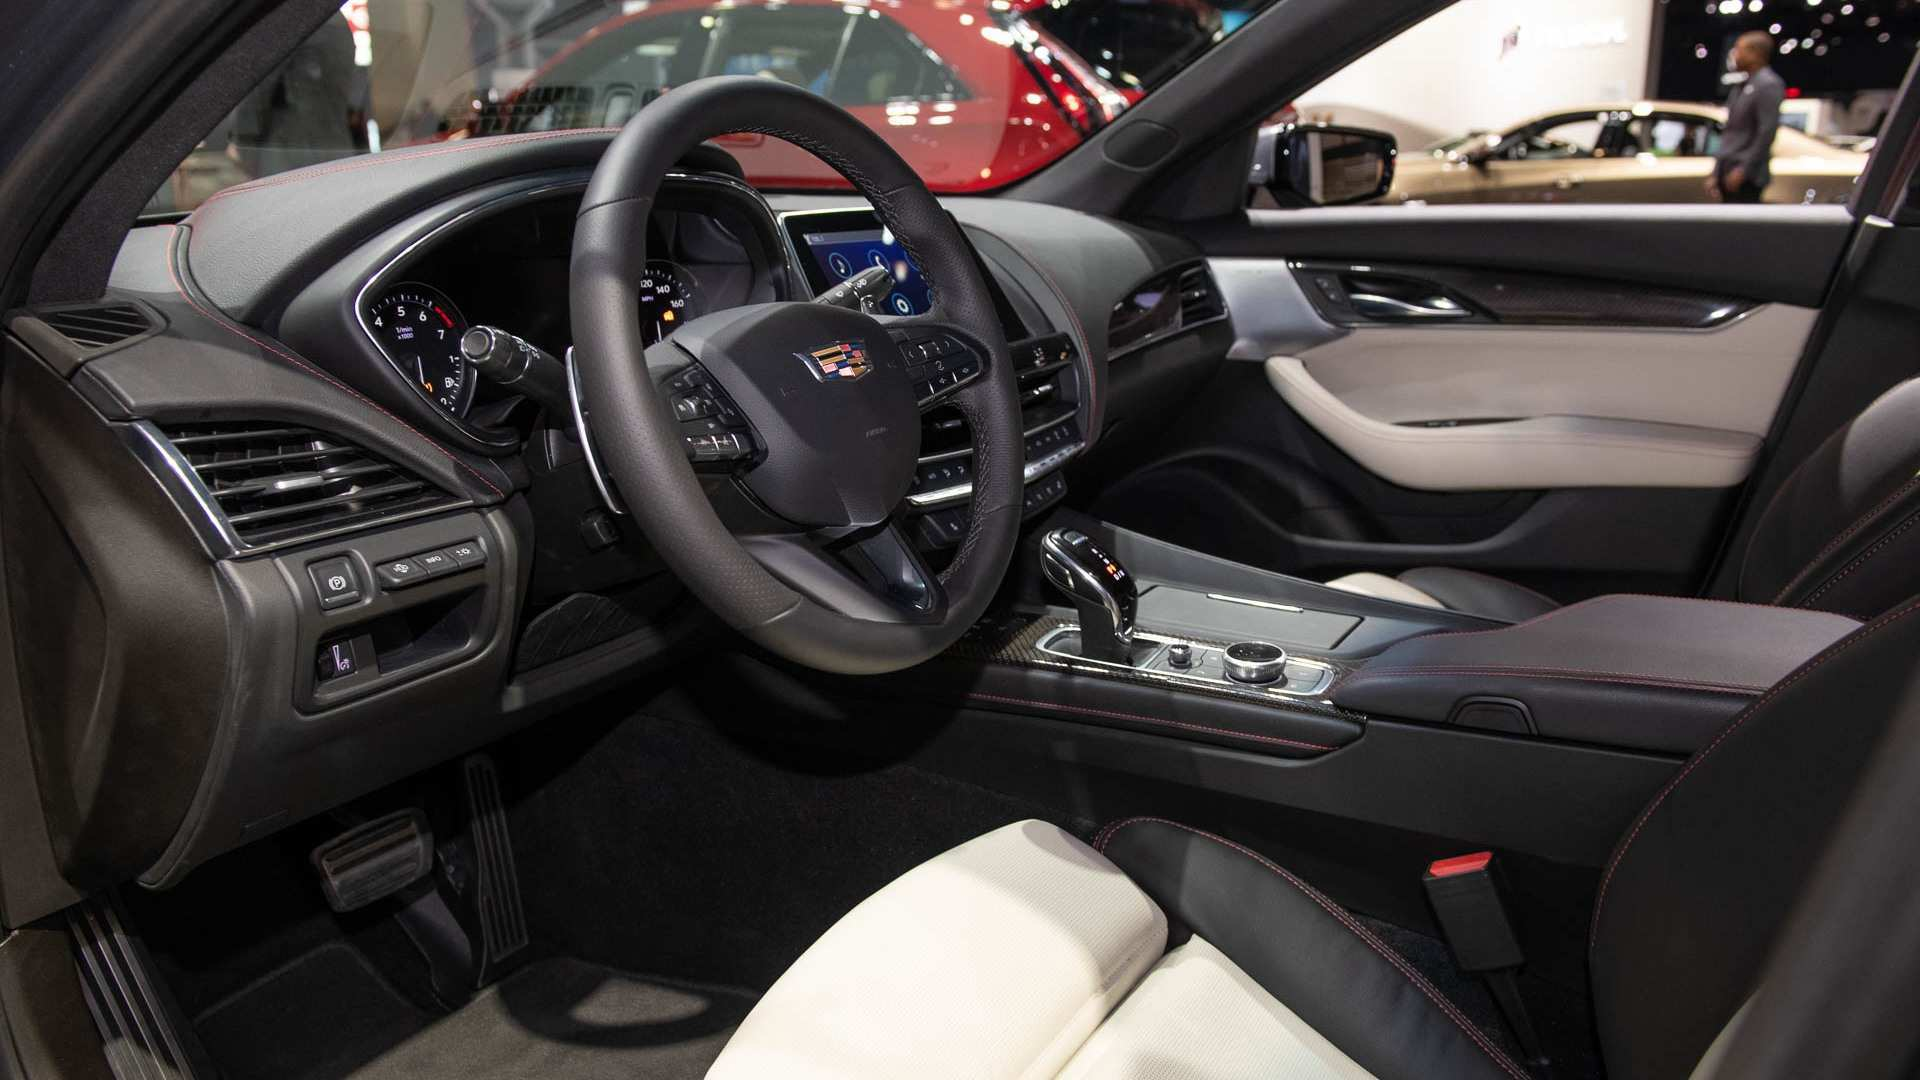 97 The Best 2020 Cadillac Ct5 Interior New Concept